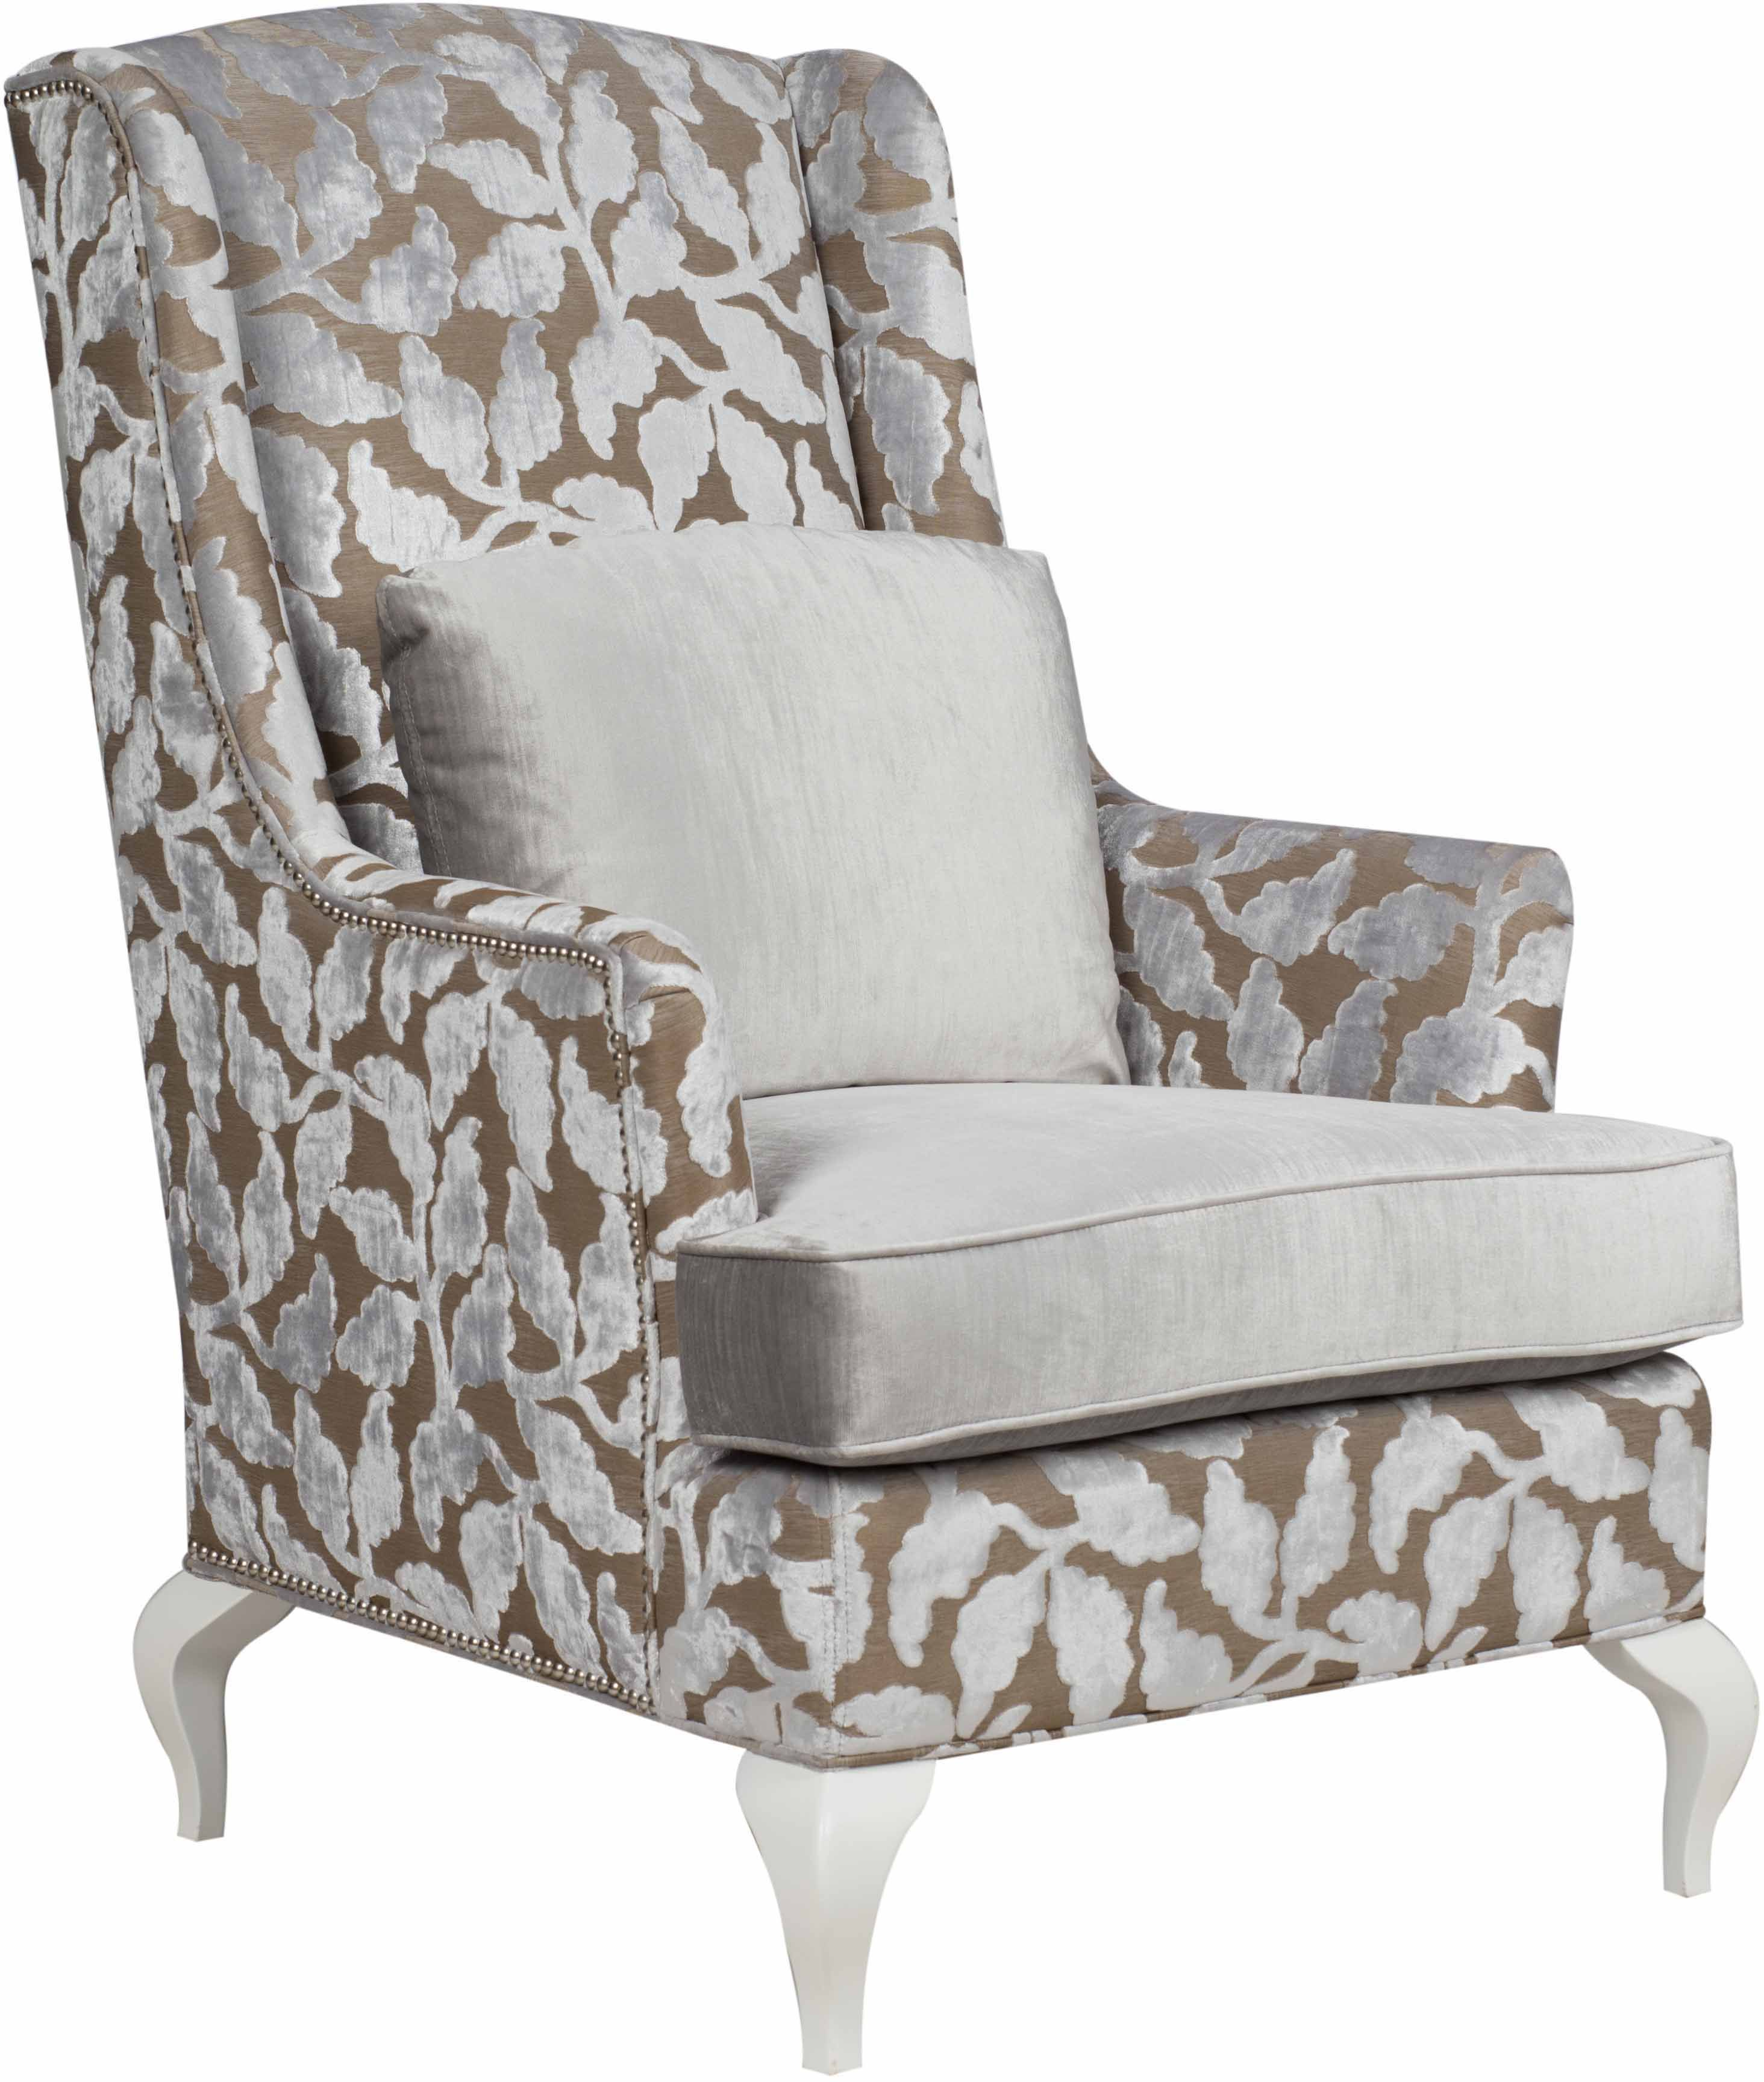 marcantonio designs product categories chairs toronto design accent furniture threshold fretwork for patio small chair with ott outside wall clocks pottery barn frog drum cool